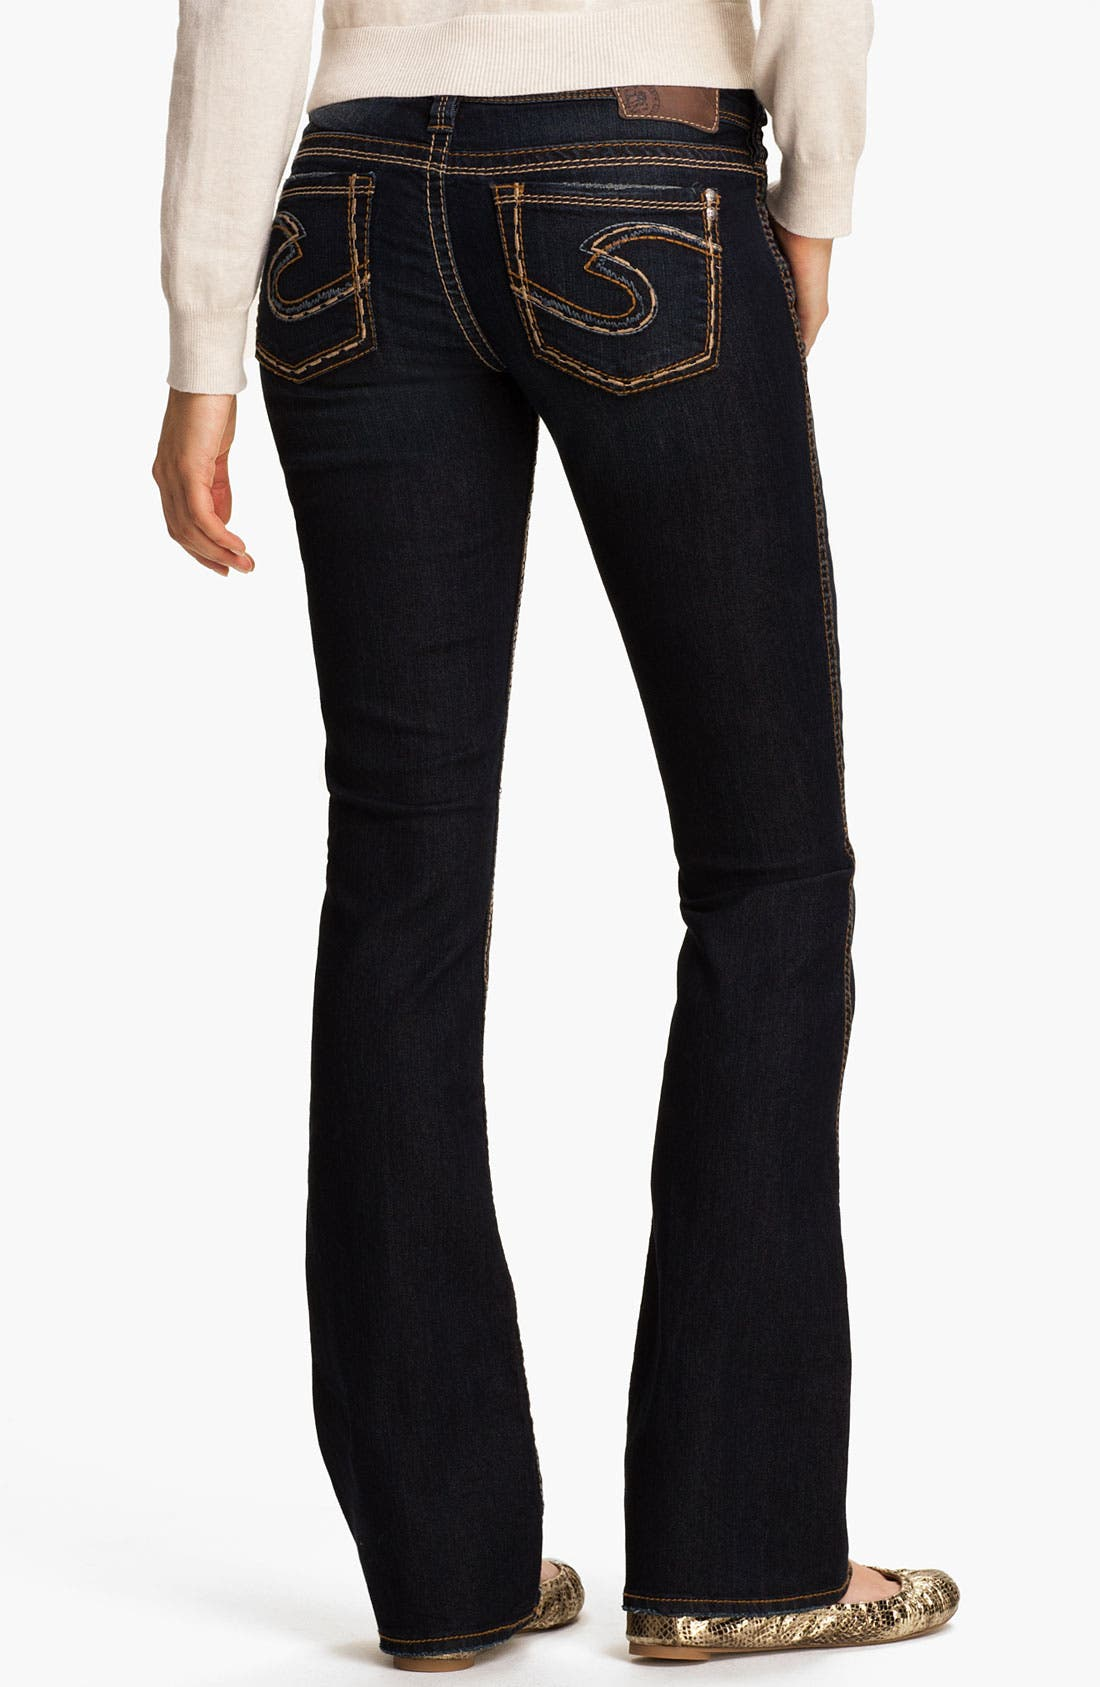 Main Image - Silver Jeans Co. 'Frances' Bootcut Jeans (Juniors)